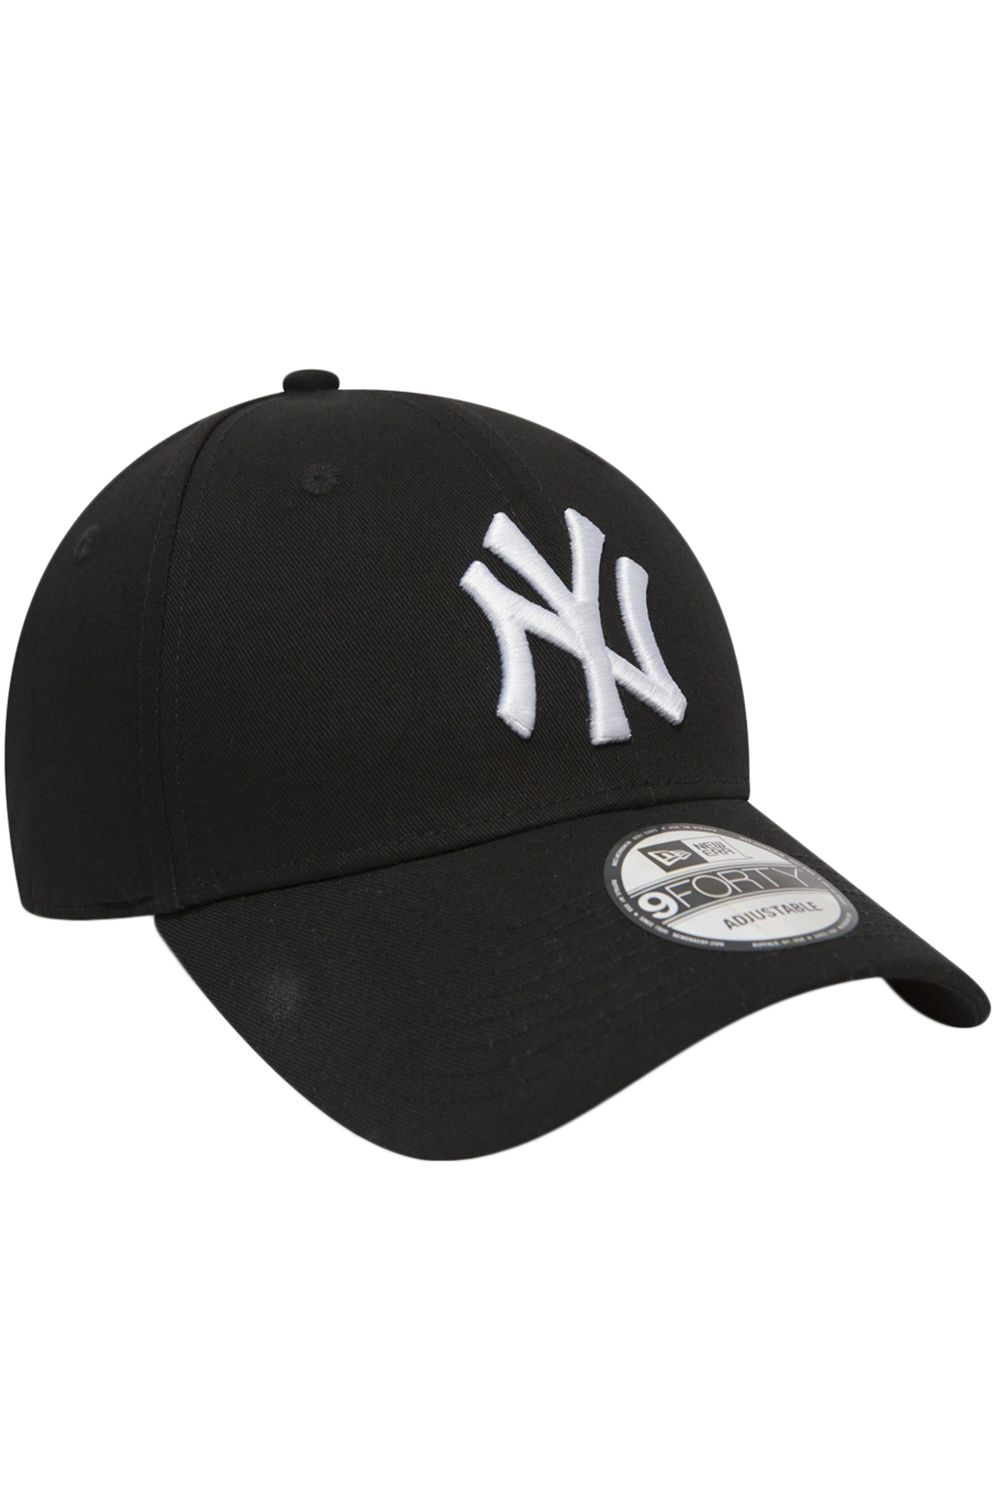 680c5fddea808 ... New Era Cap 940 LEAGUE BASIC NEW YORK YANKEES Black Optic White